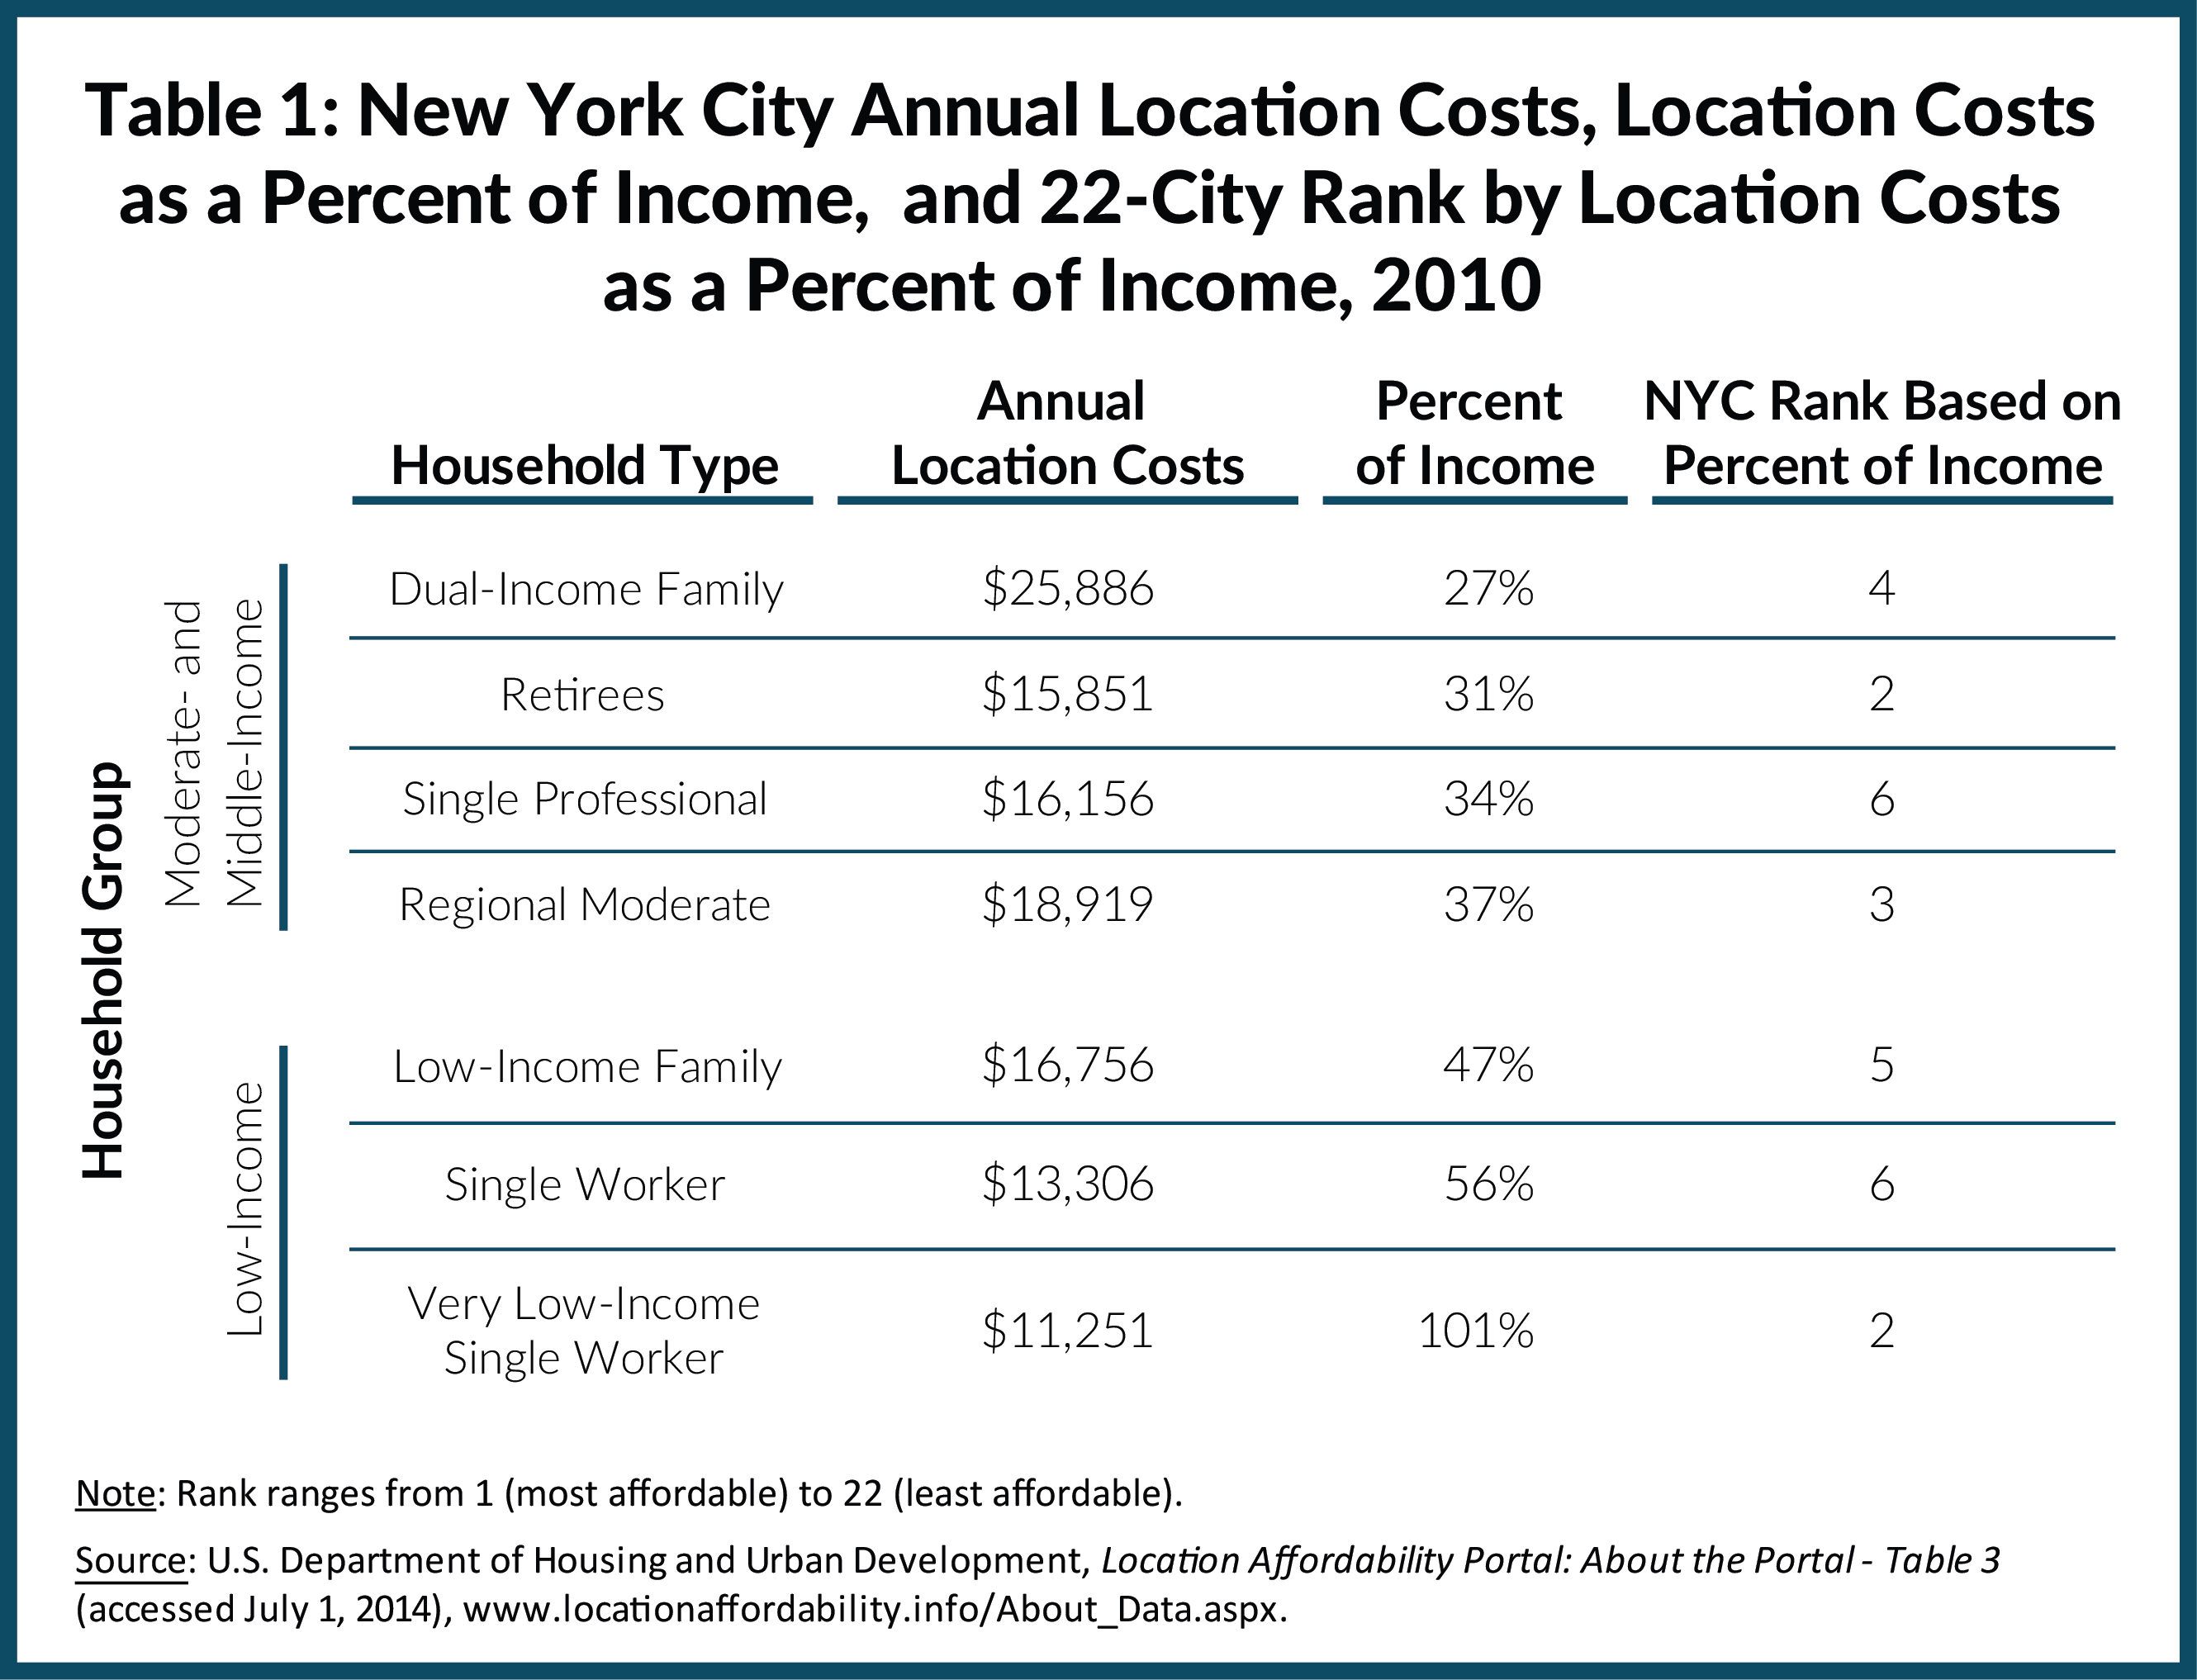 Table 1: New York City Annual Location Costs, Location Costs as a Percent of Income, and 22-City Rank by Location Costs as a Percent of Income, 2010